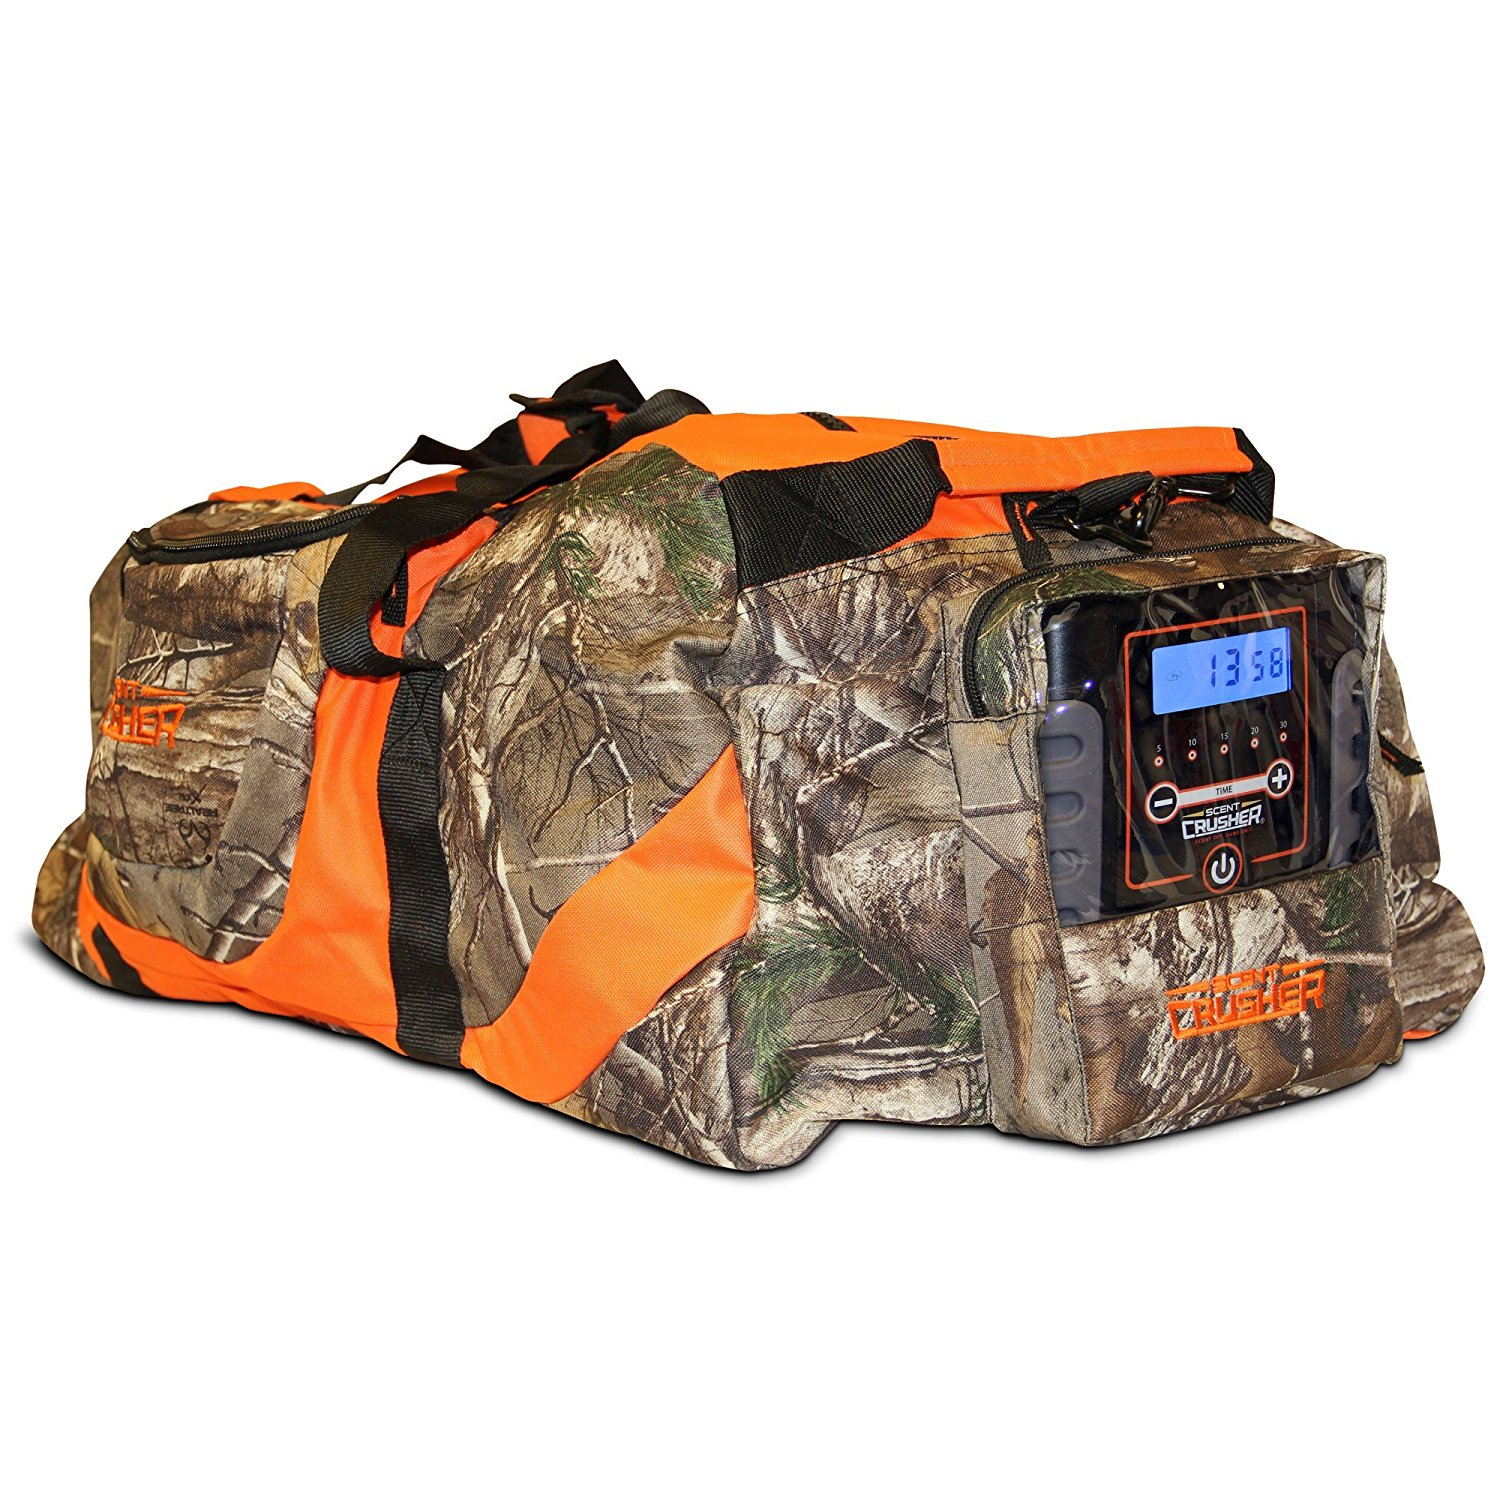 4b49657763279 Get Quotations · Scent Crusher Realtree Camo Gear Bag Ozone Generator -  Destroys Odors Within 30 mins, Use